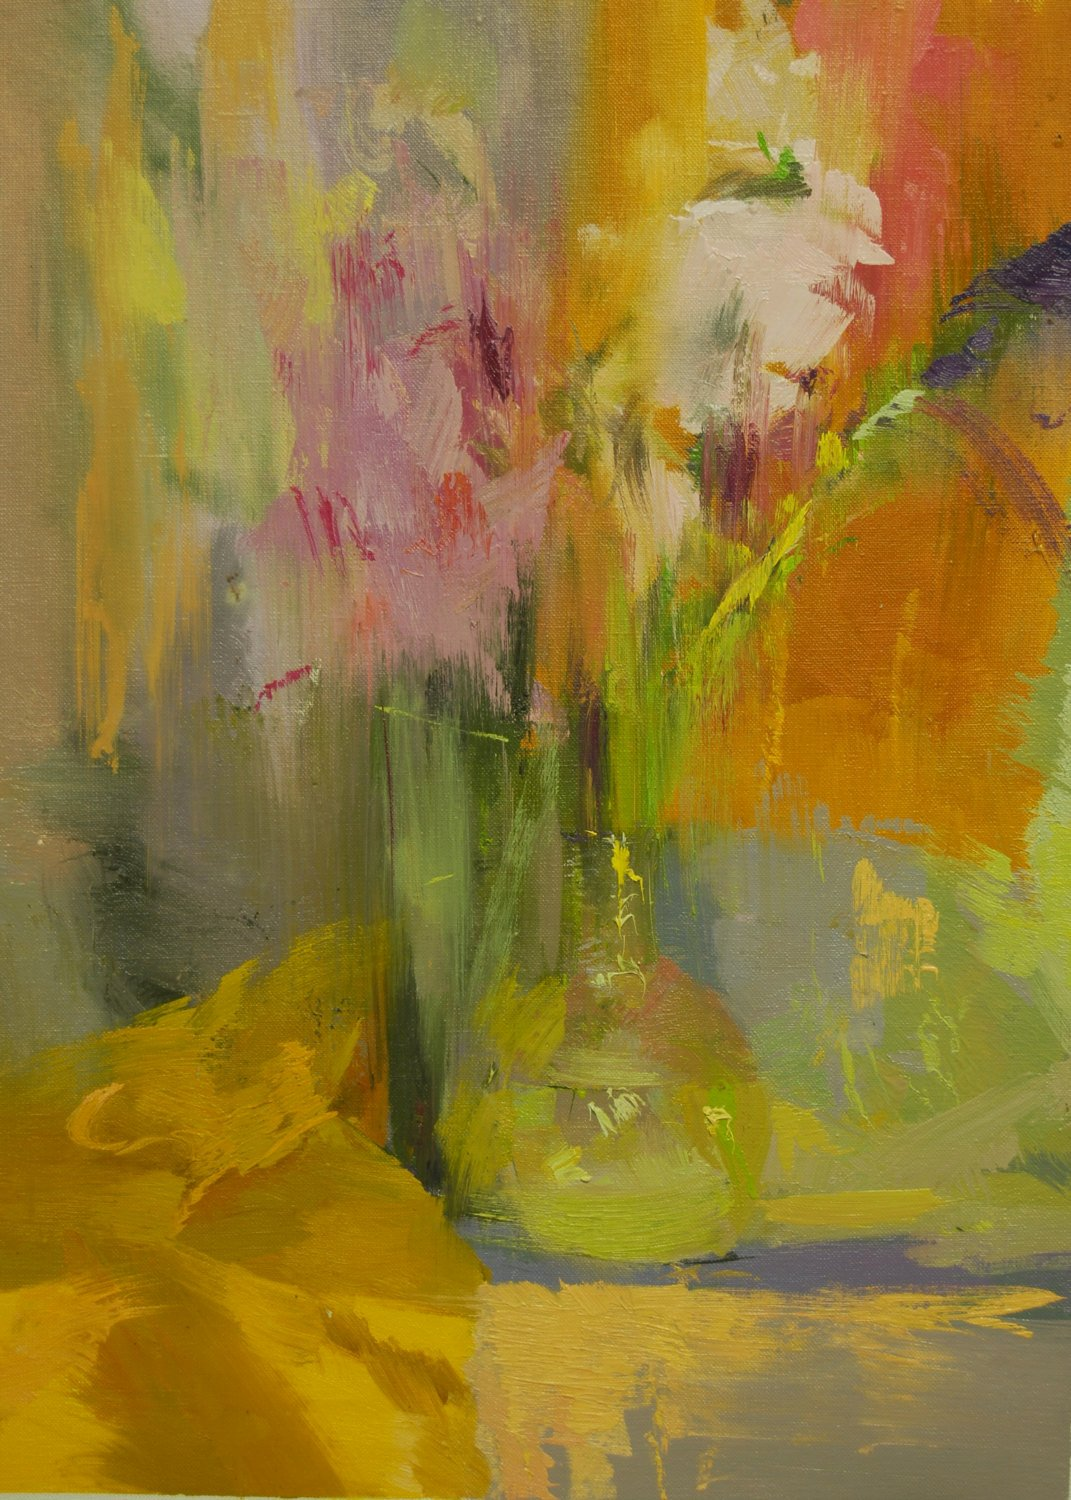 Abstract Paintings Of Flowers Best Of Colorful Abstract Painting Flowers Abstract Art Contemporary